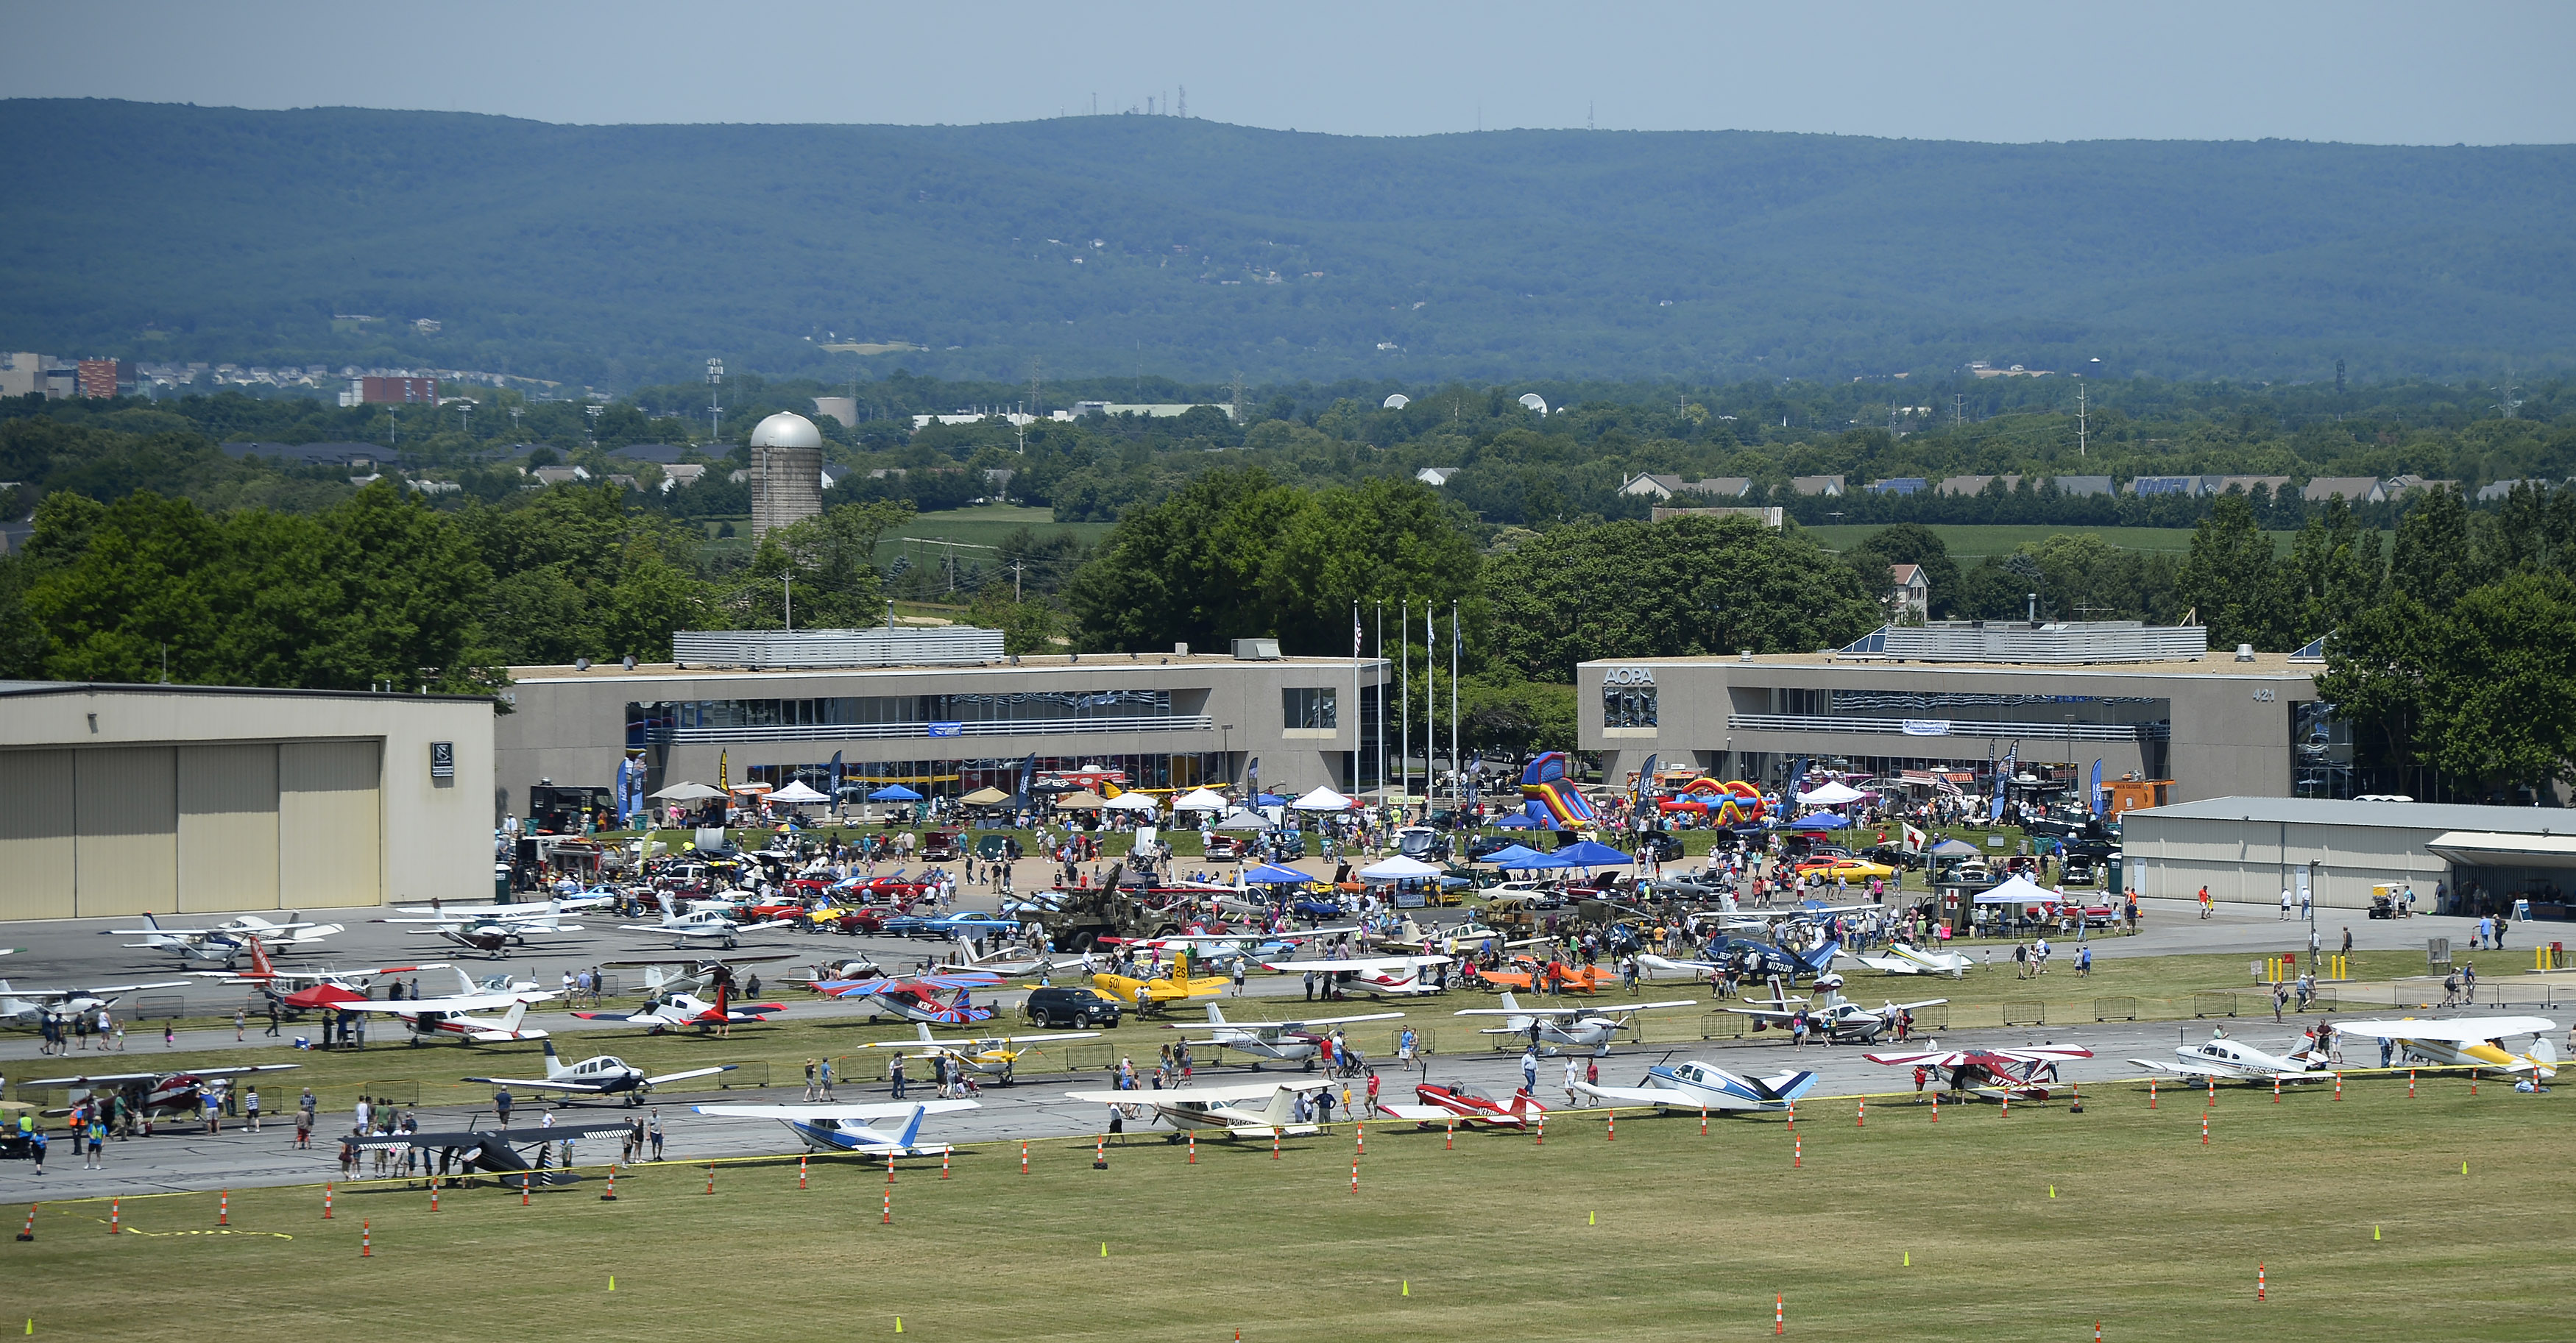 Aviation, automobile, and motorcycle aficionados attend the Wings 'n Wheels event near AOPA headquarters in Frederick, Maryland. Photo by David Tulis.